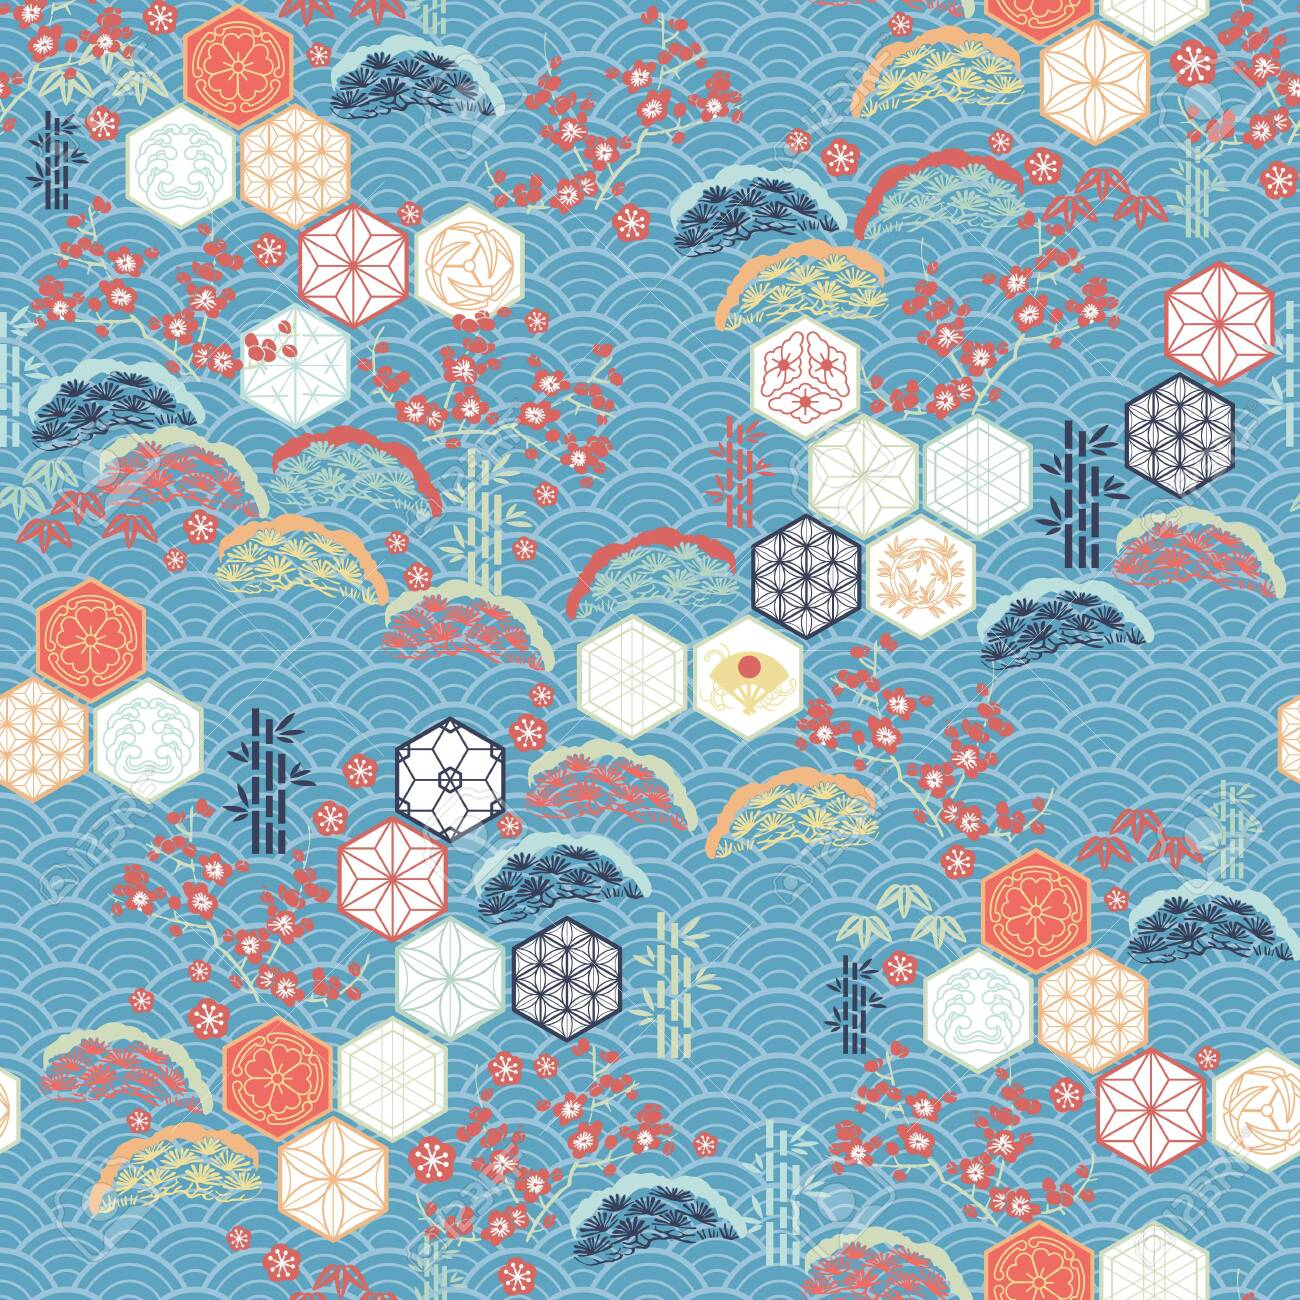 Japanese pattern vector. Cherry blossom flower, pine tree, Kumiko icons and bamboo elements motif background. - 120809485